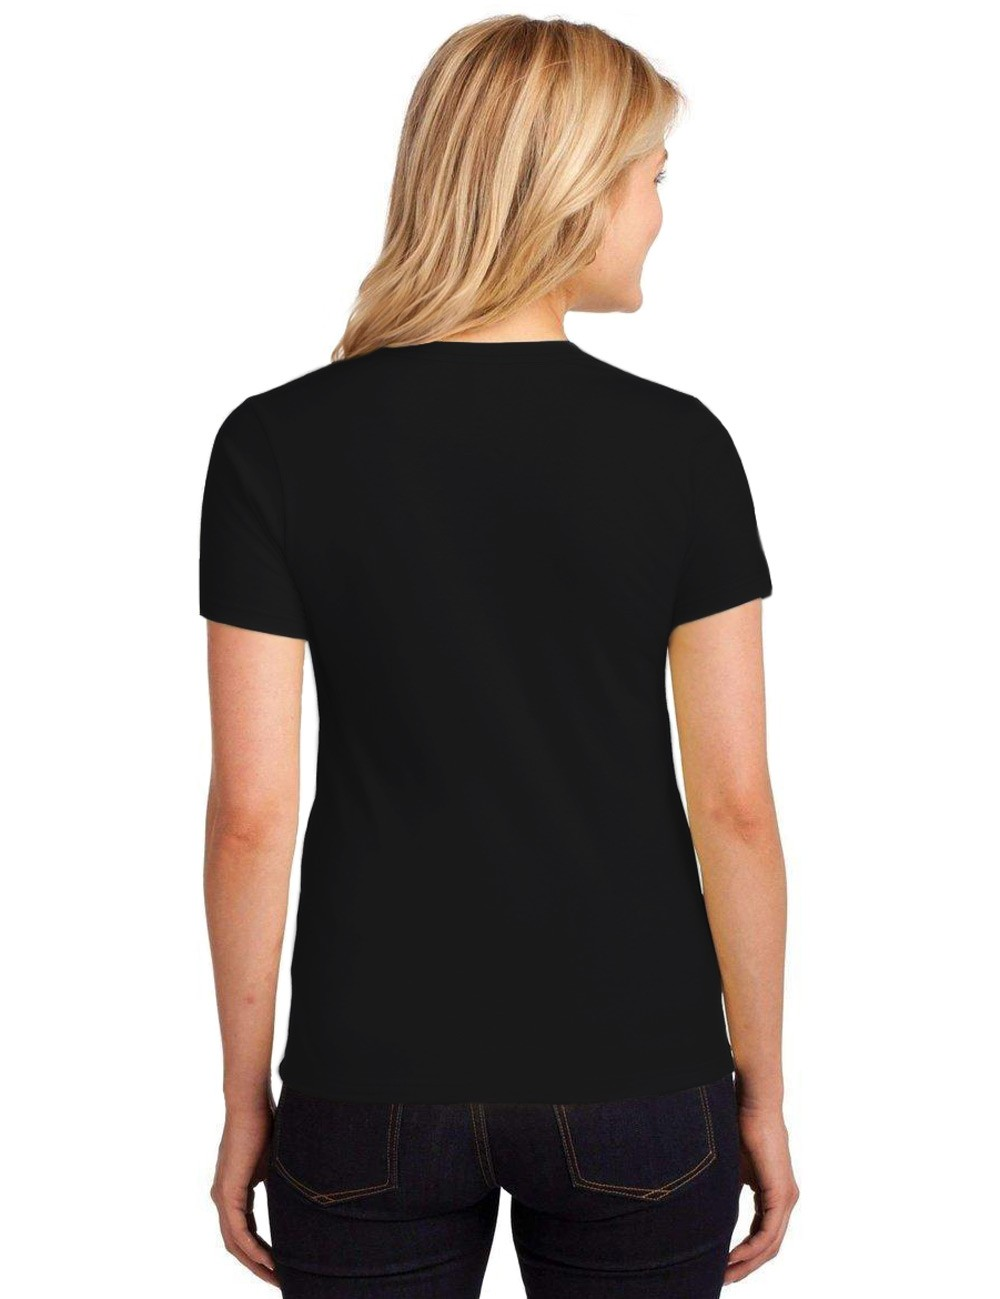 Camiseta Feminina T-Shirt Think Outside The Box Baby Look ER_065